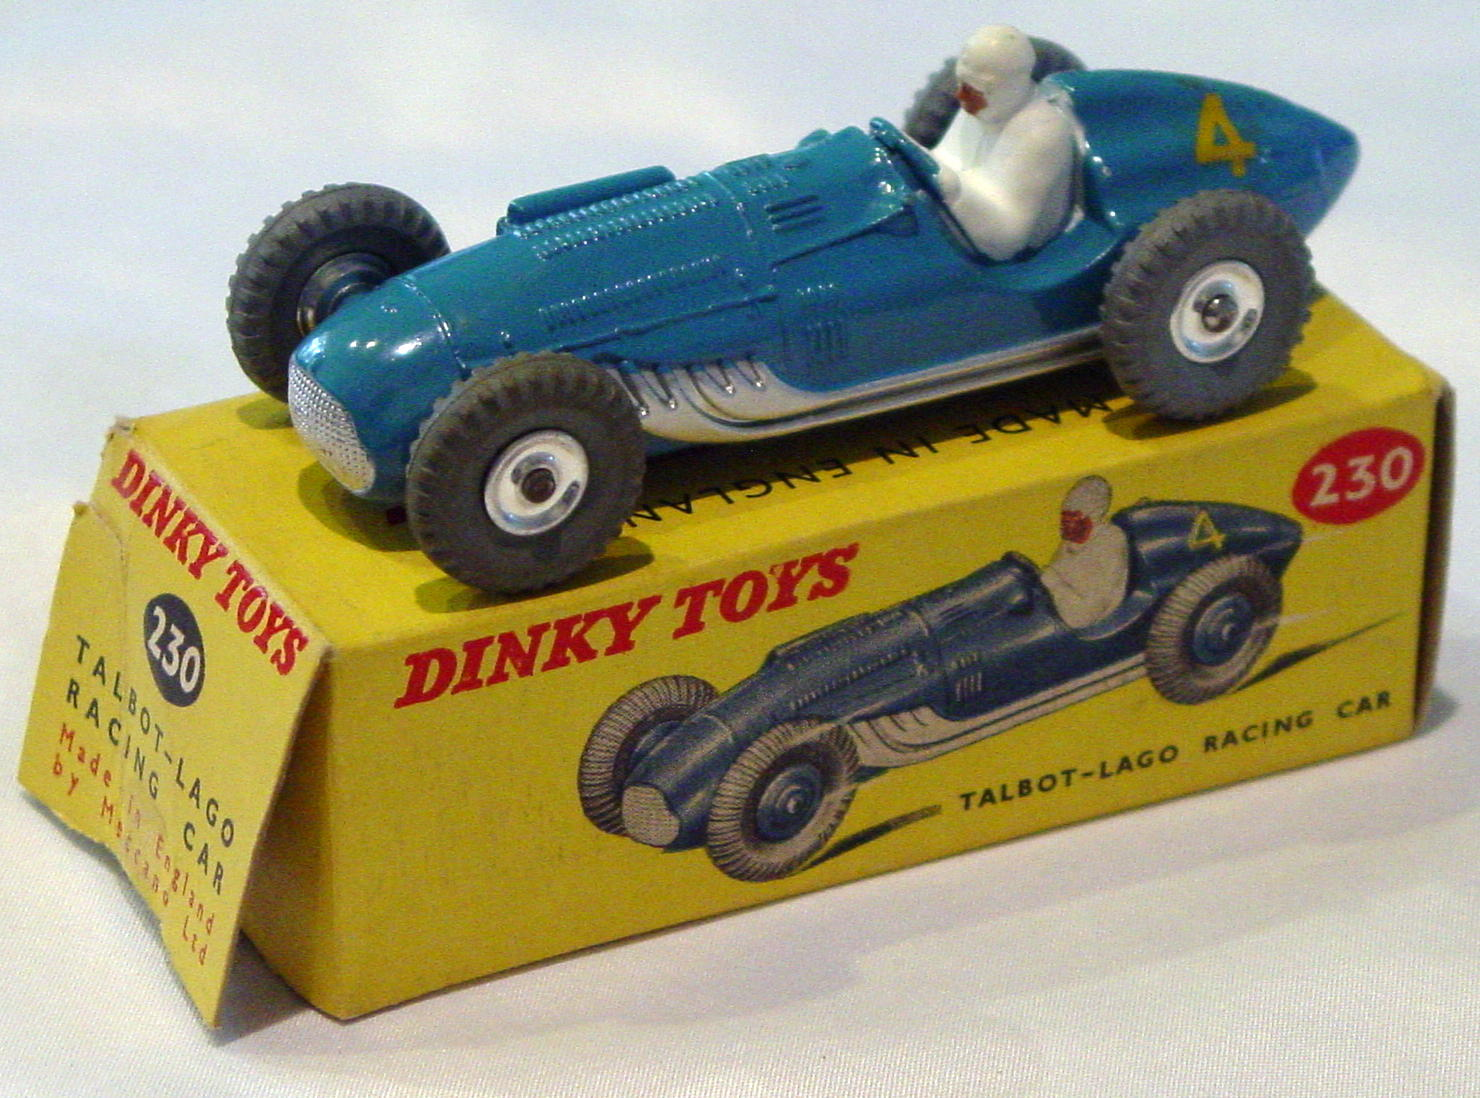 Dinky 230 - Talbot Lago spun hubs one slight chip C9 box 1 loose flap